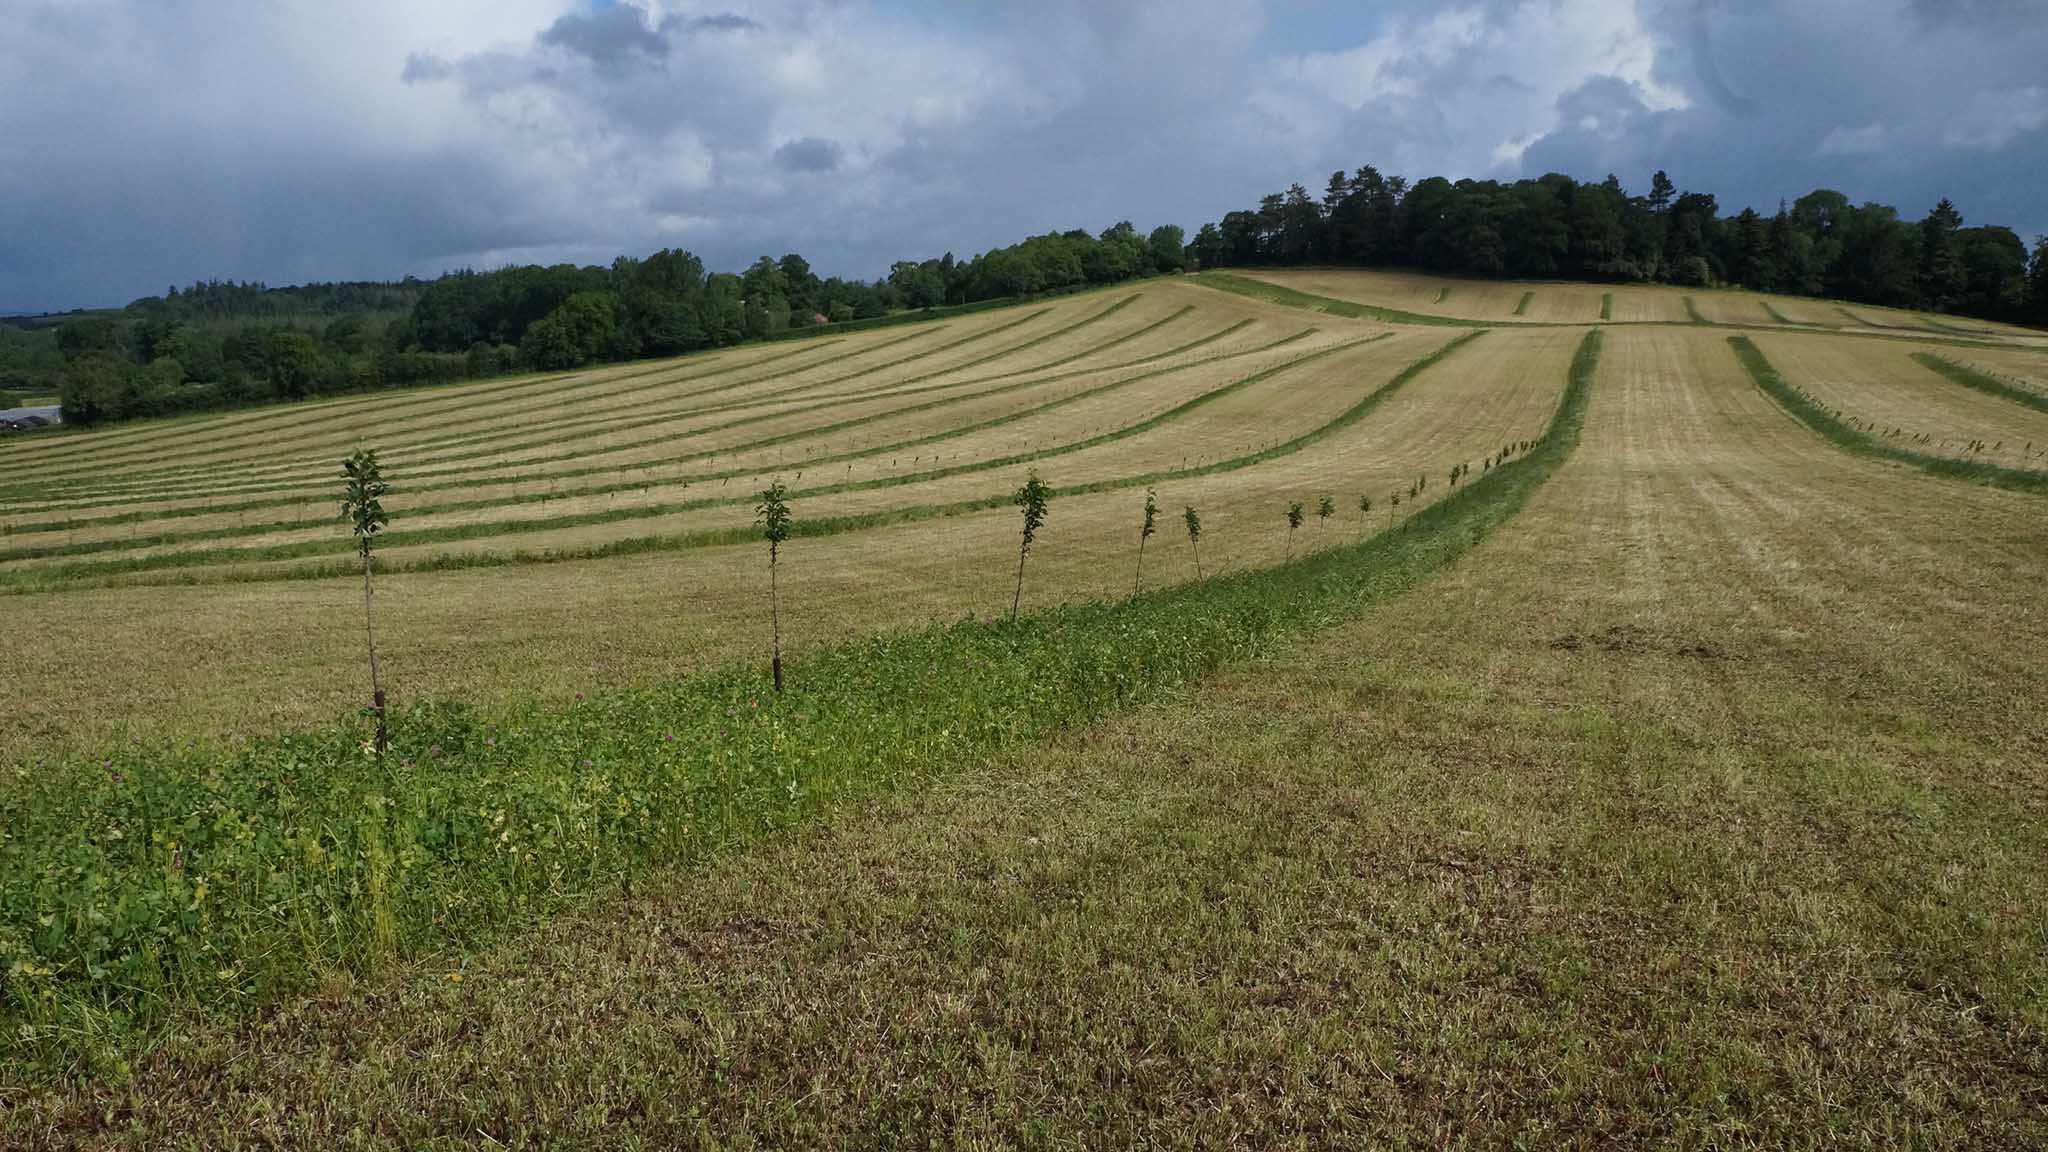 Agroforestry on farms essential to improve productivity and environmental protection